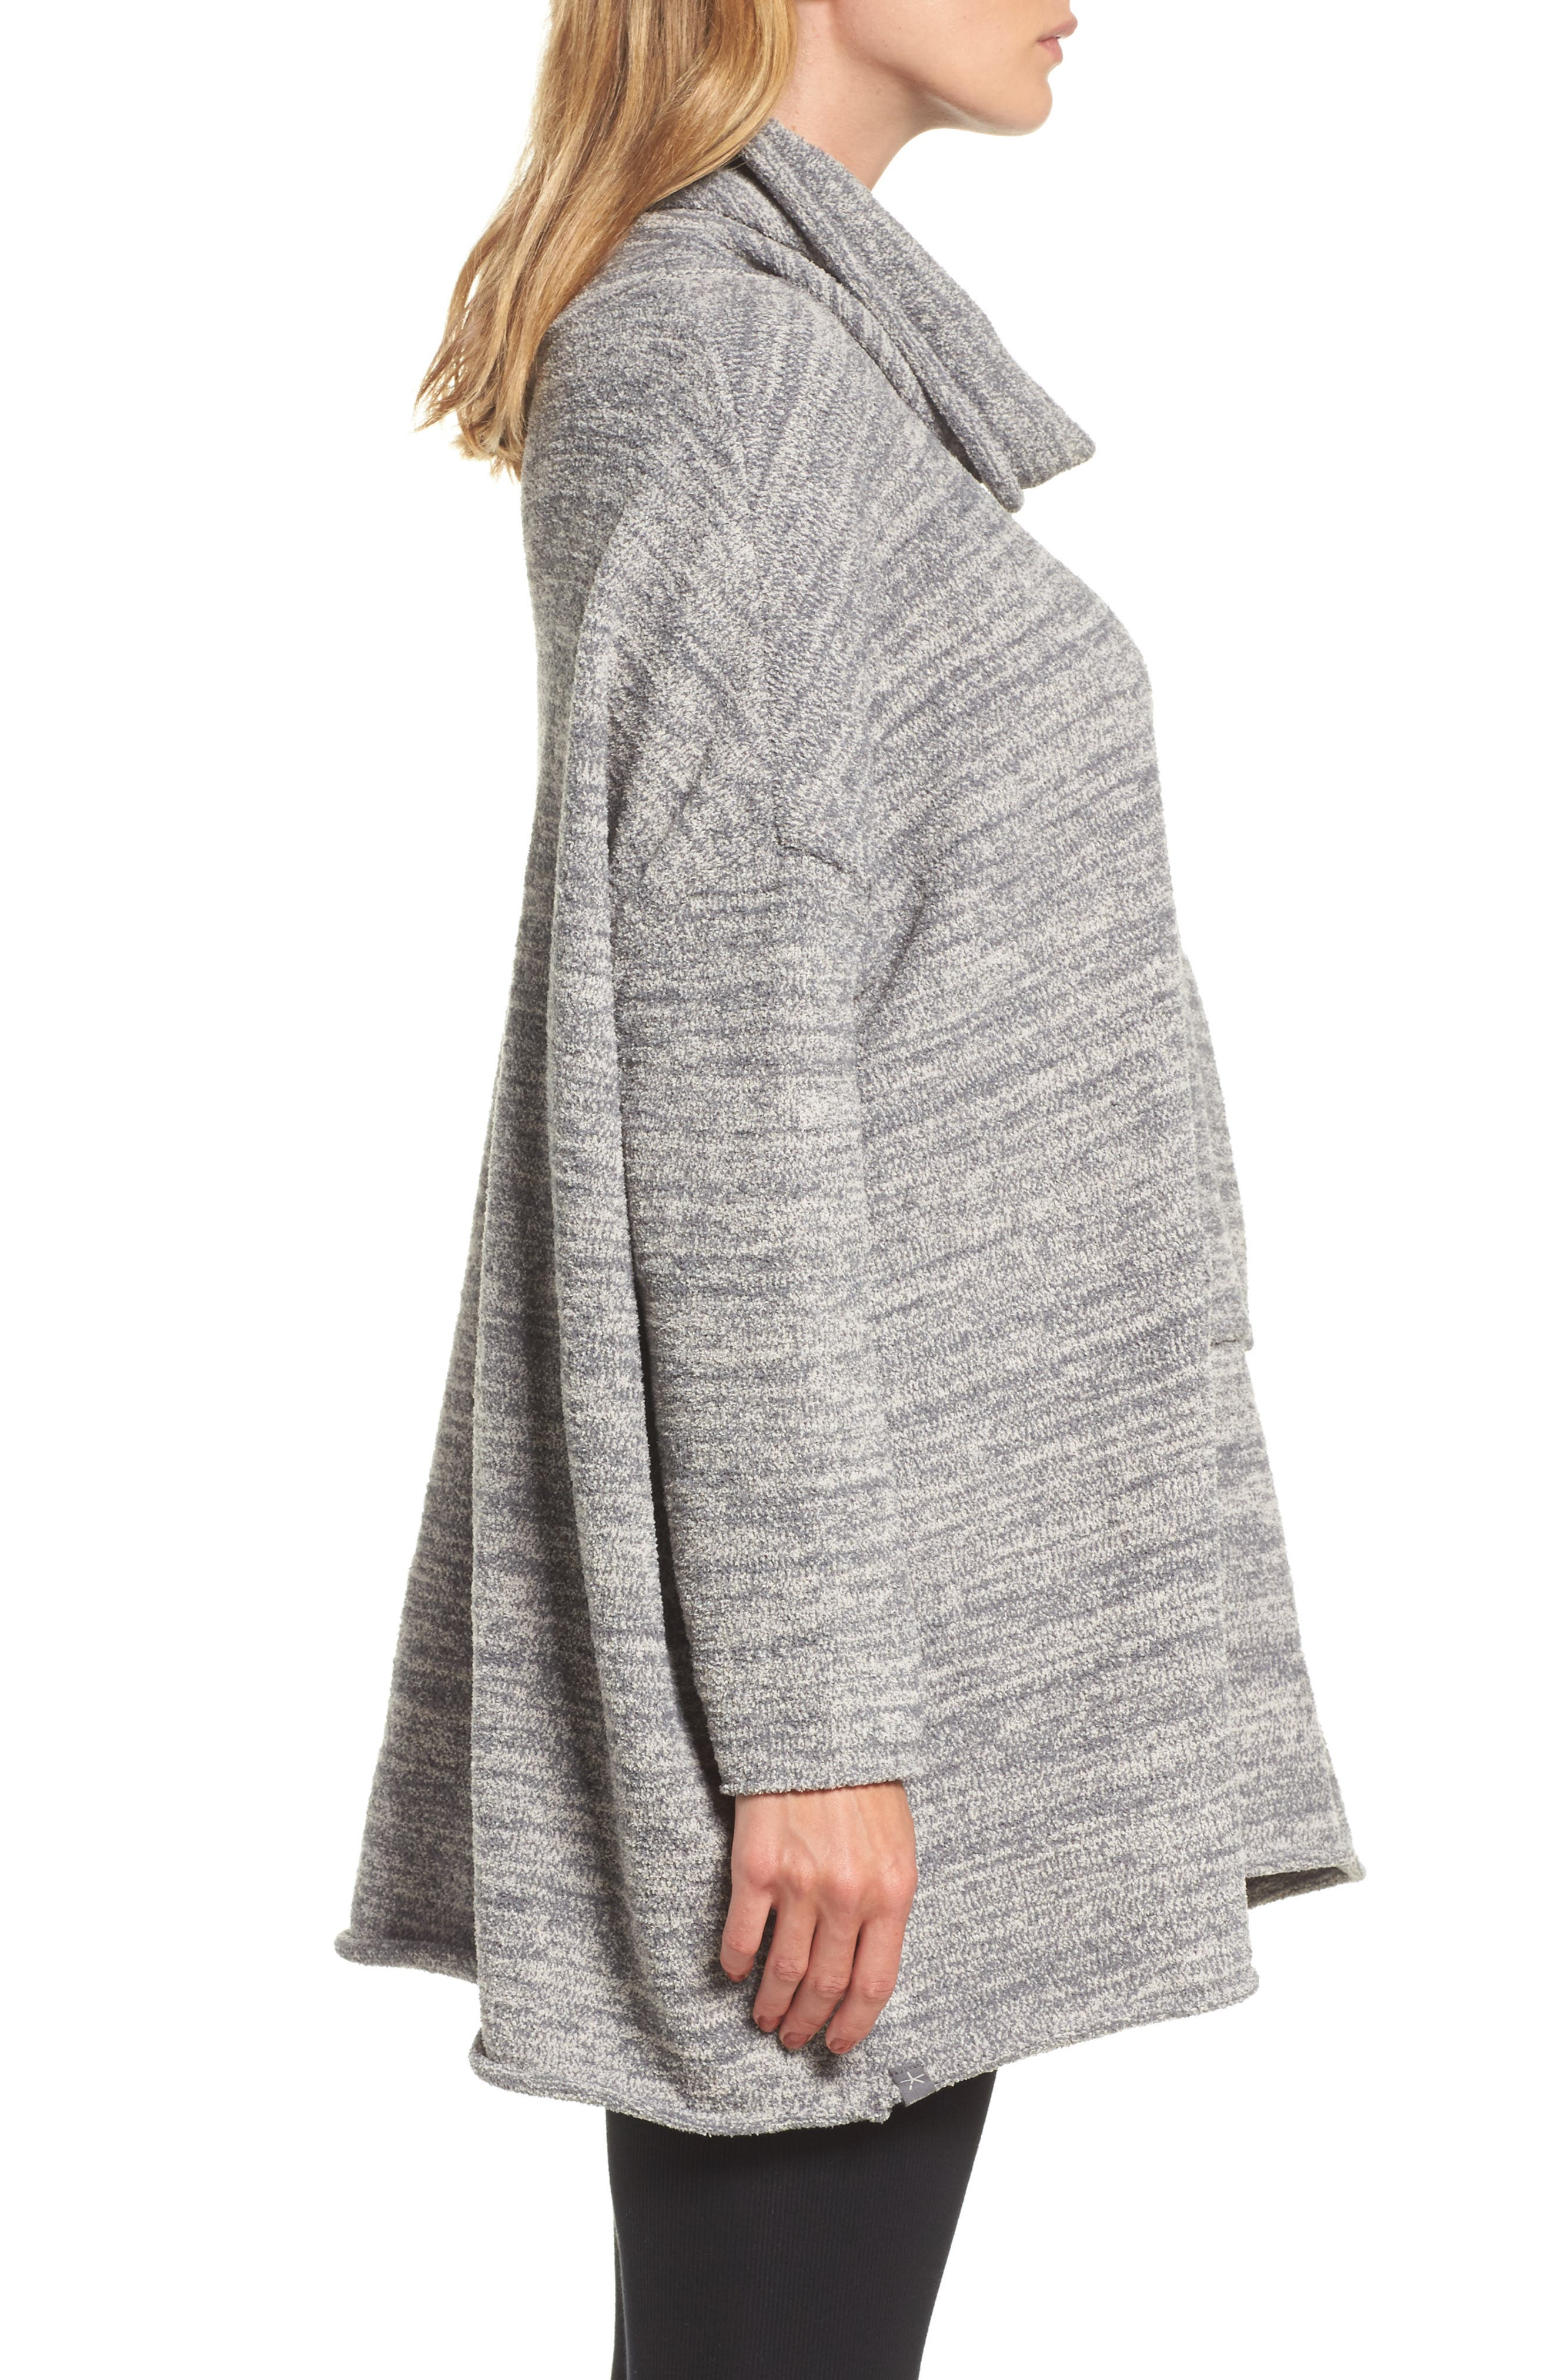 Cozychic<sup>®</sup> Lounge Pullover,                             Alternate thumbnail 3, color,                             GRAPHITE/ STONE HEATHERED